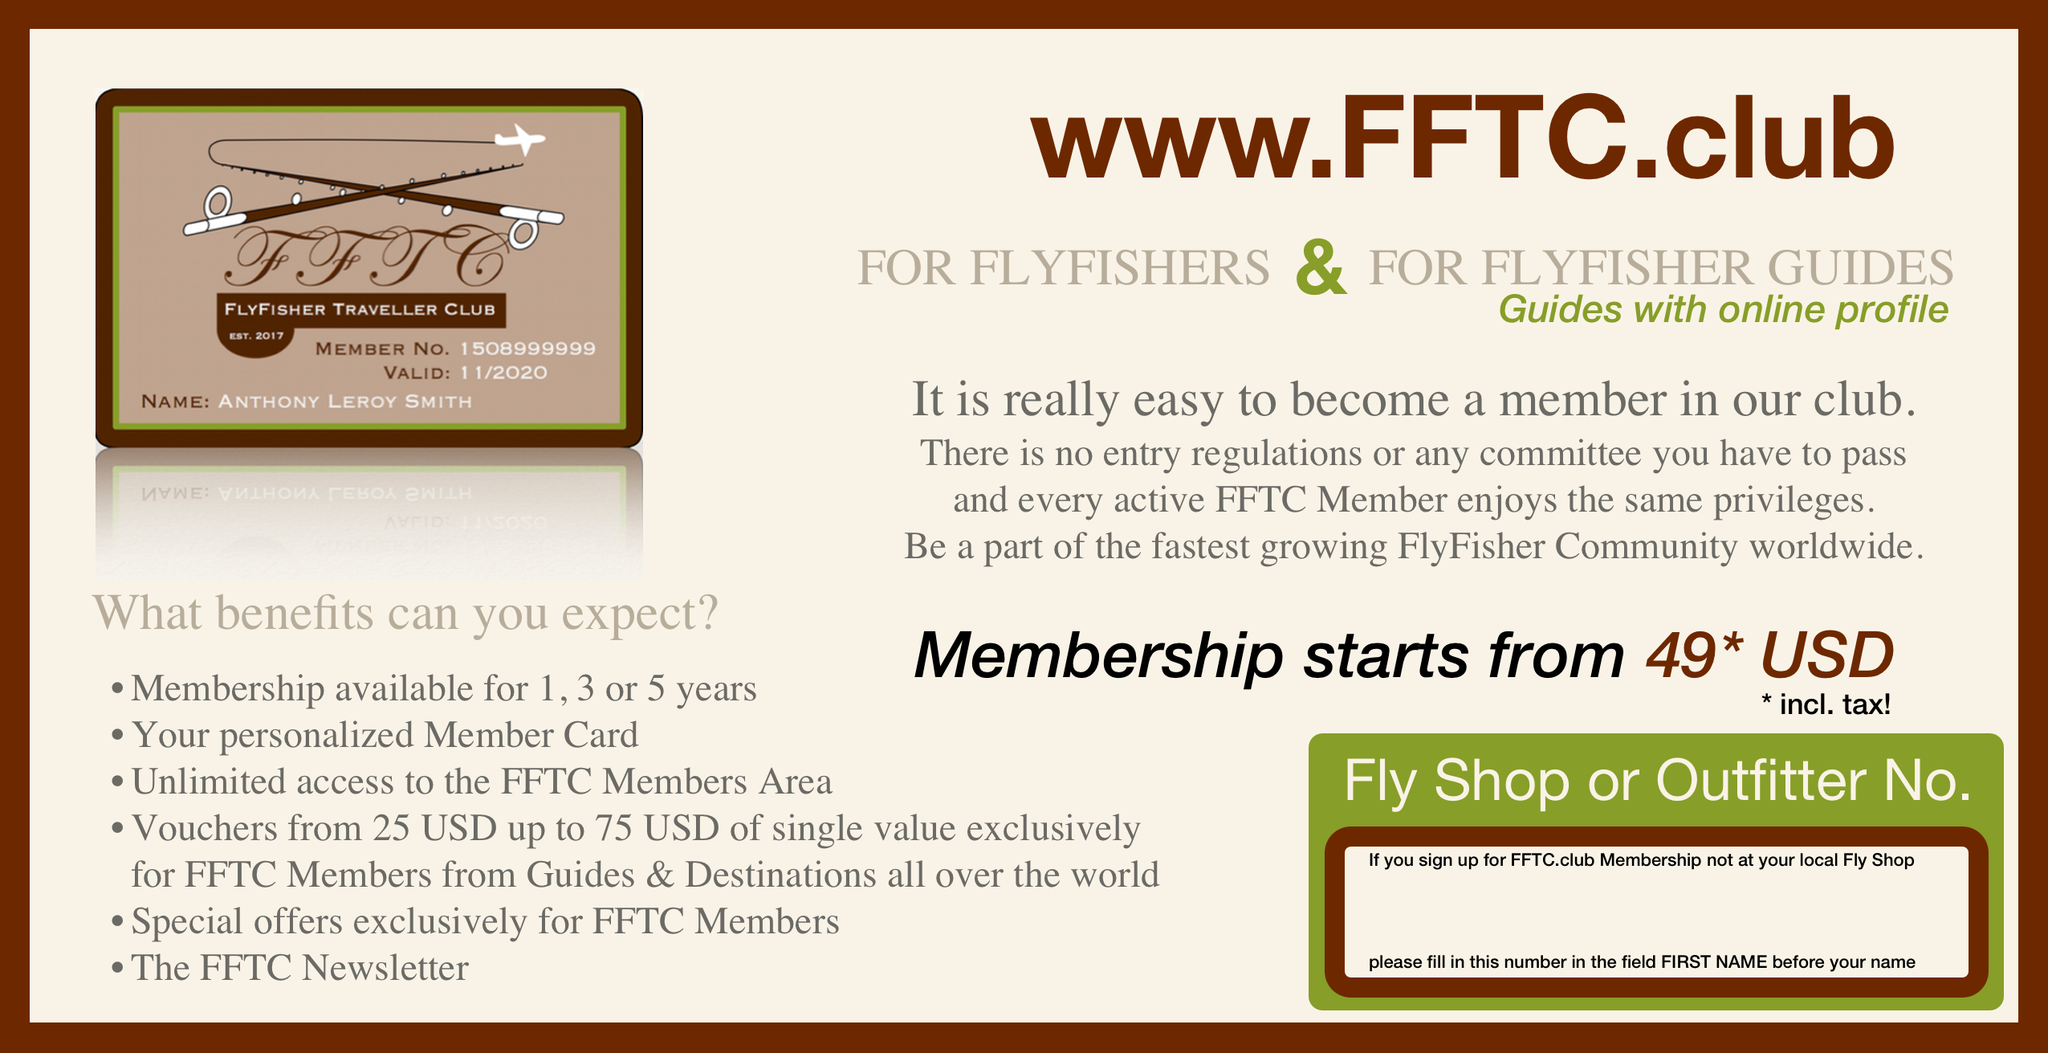 FFTC.club - Fly Fisher Membership - Backside Flyer 2017!